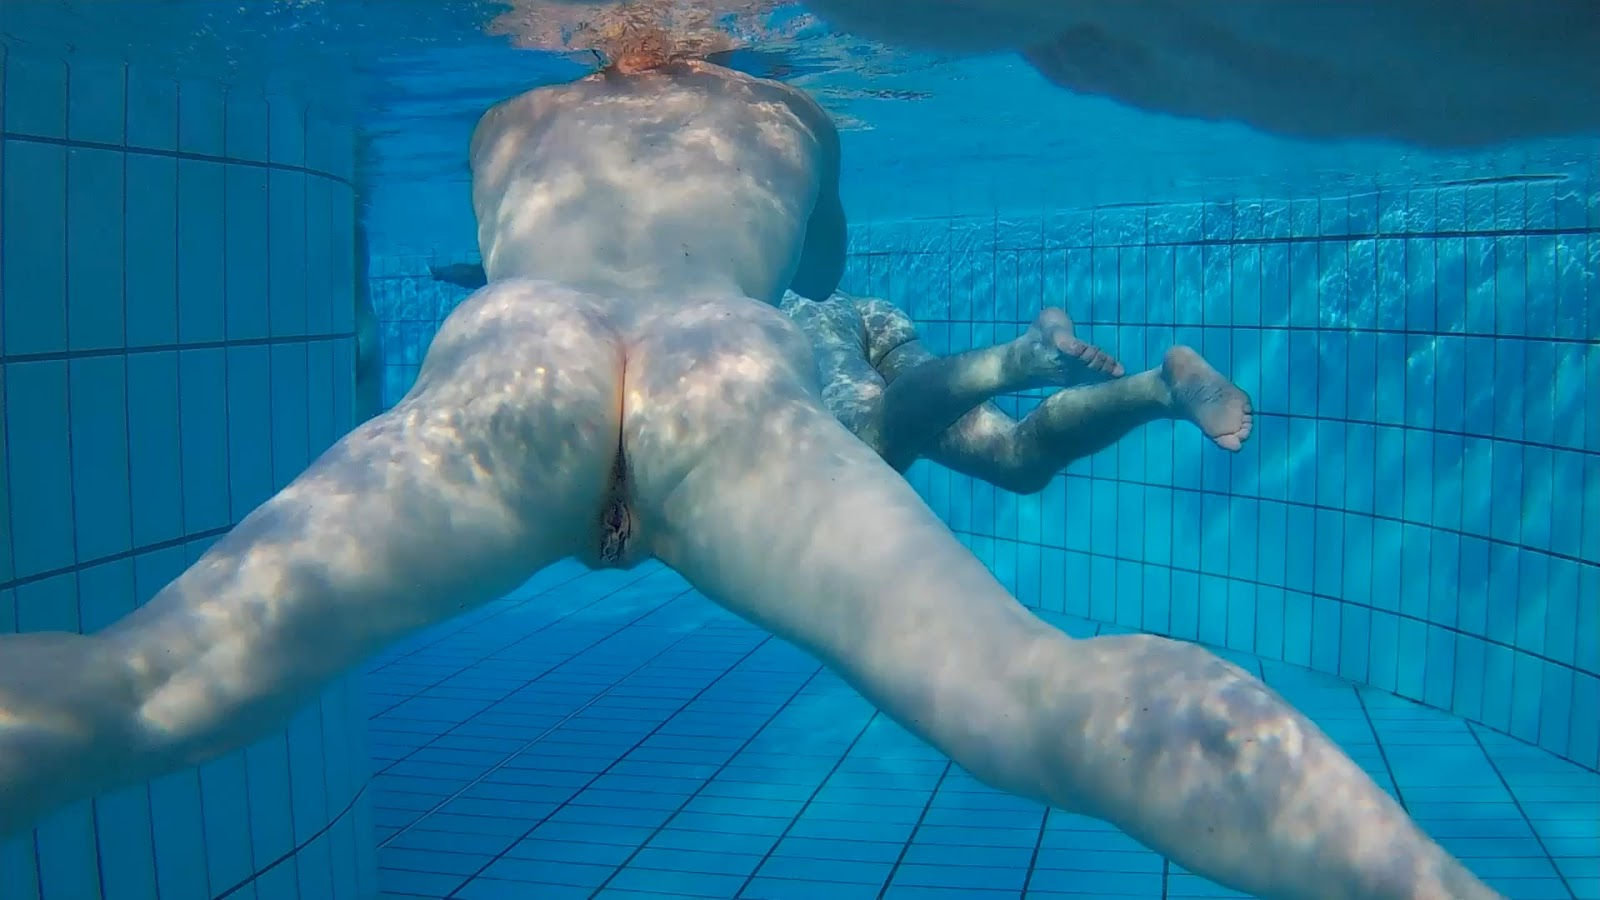 Watch this underwater upskirt hotttttttttt